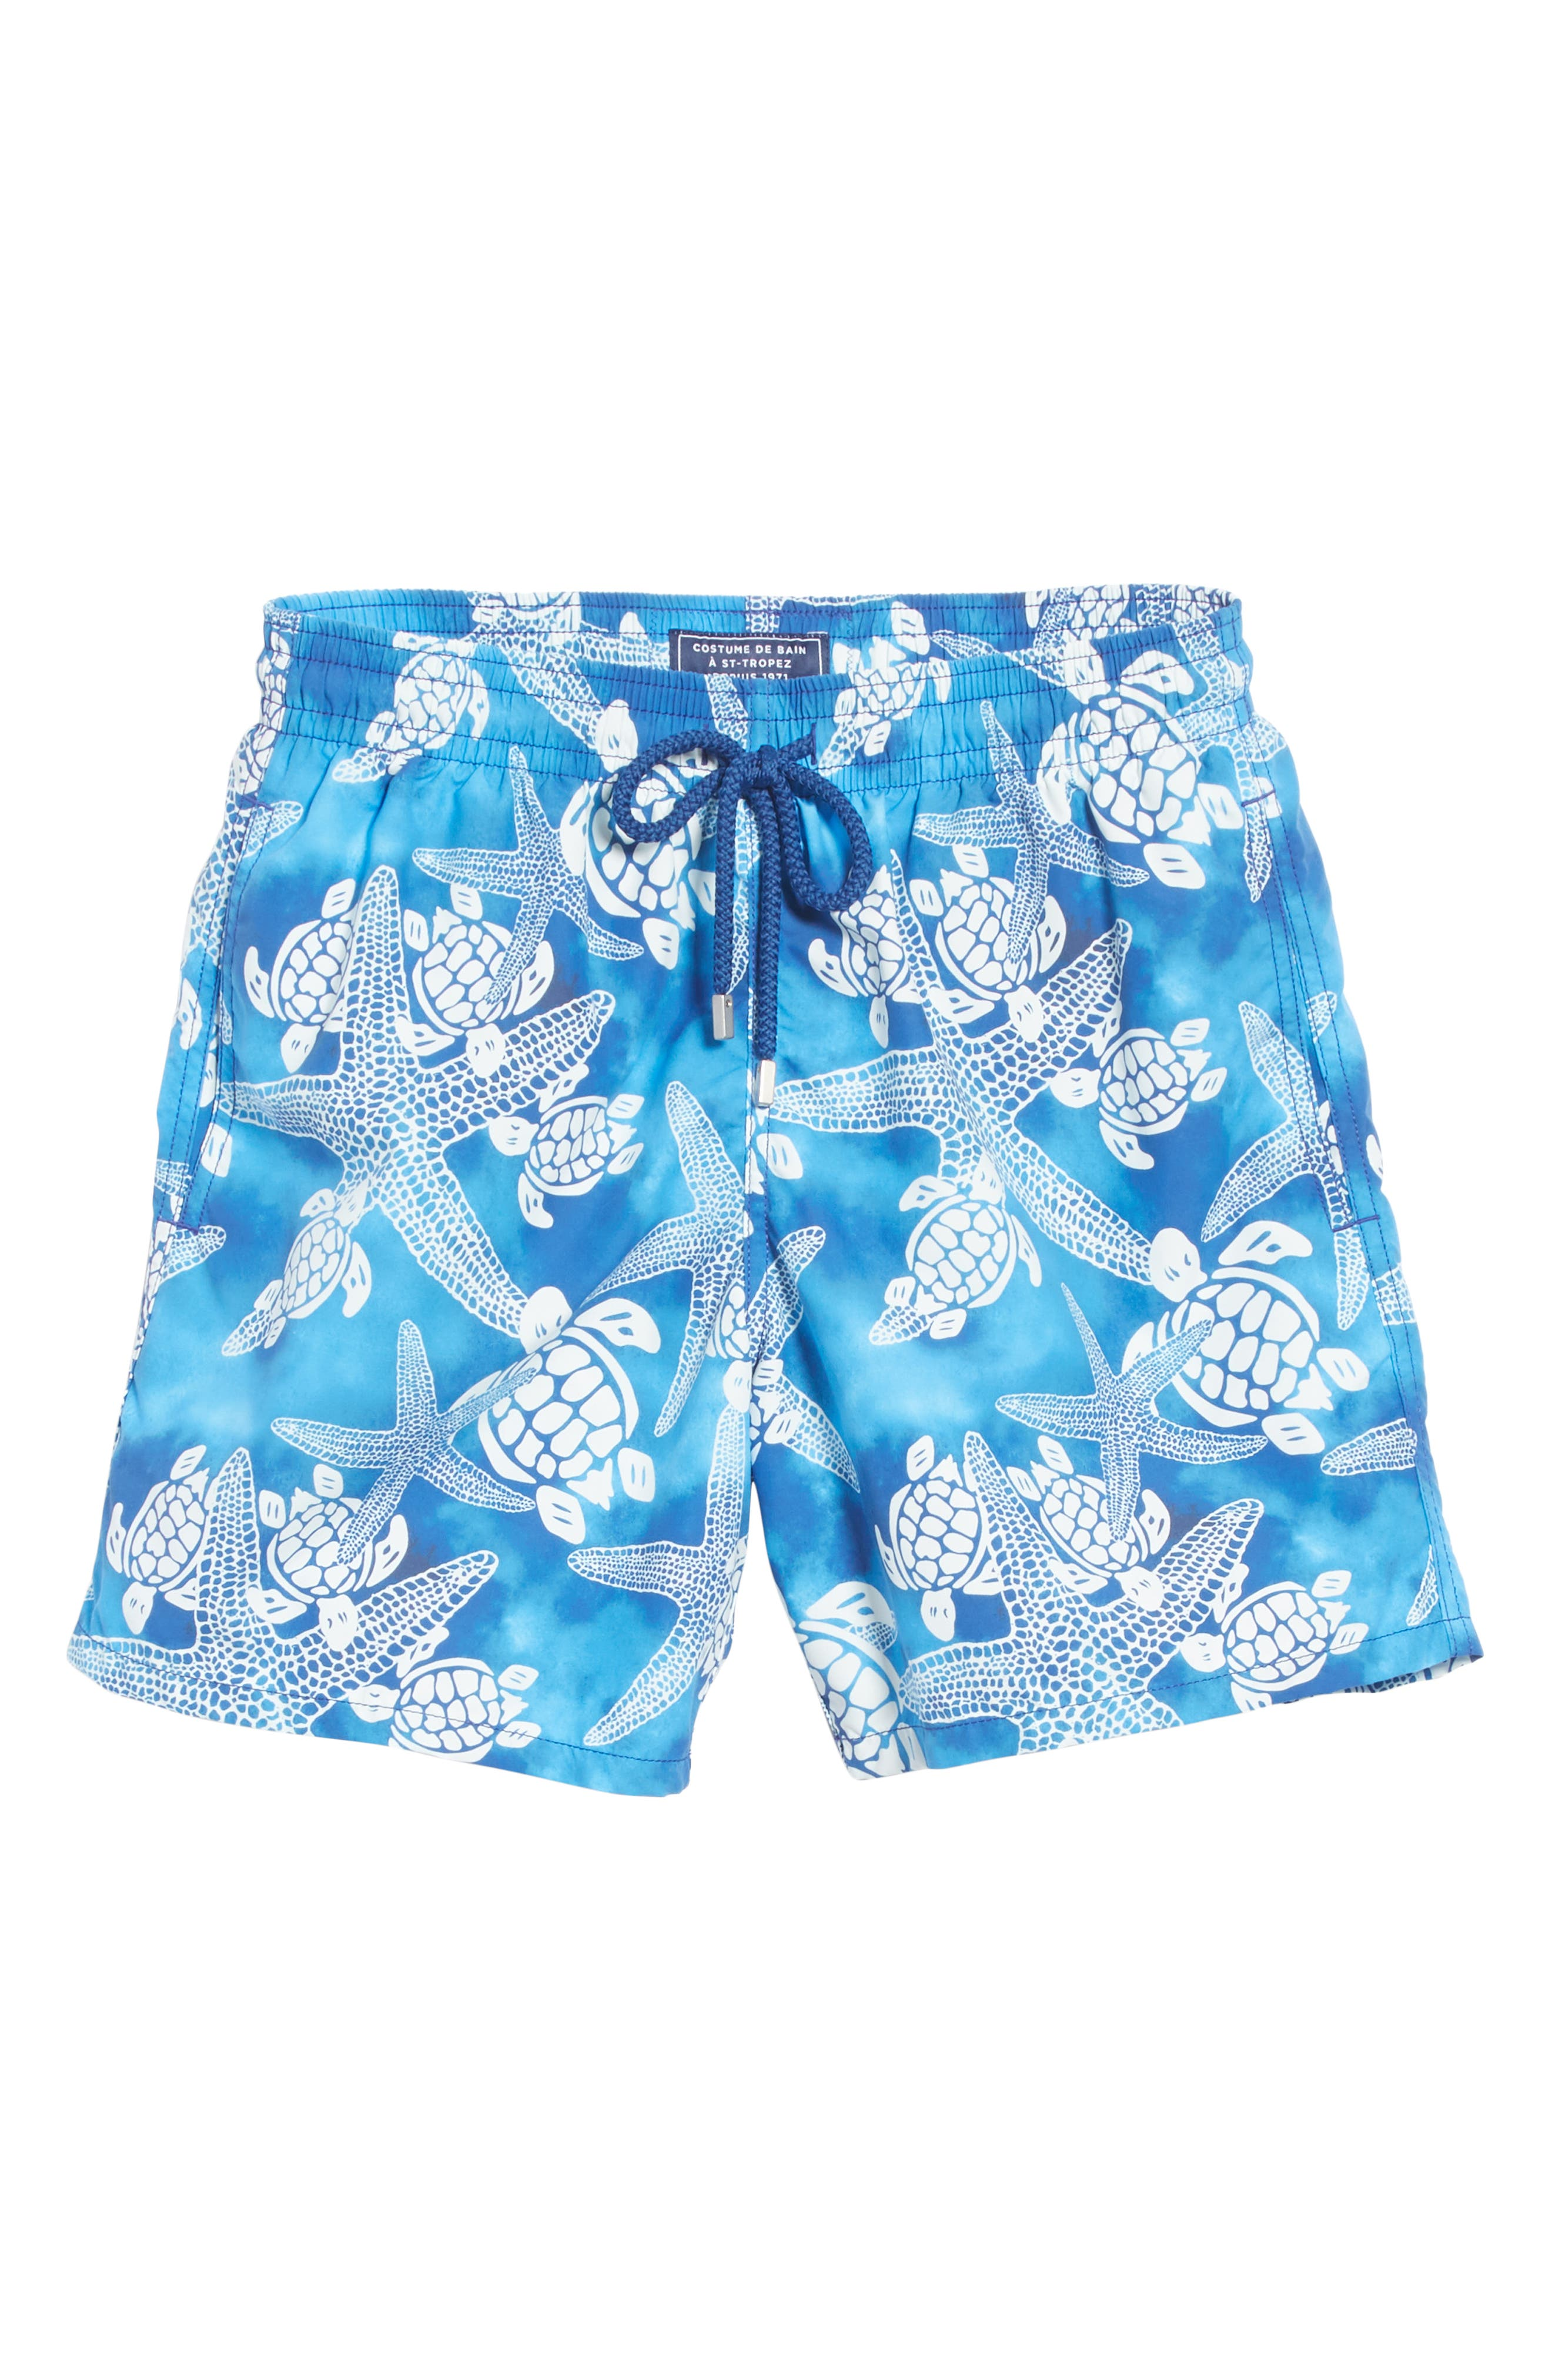 Starfish & Turtles Swim Trunks,                             Alternate thumbnail 6, color,                             NEPTUNE